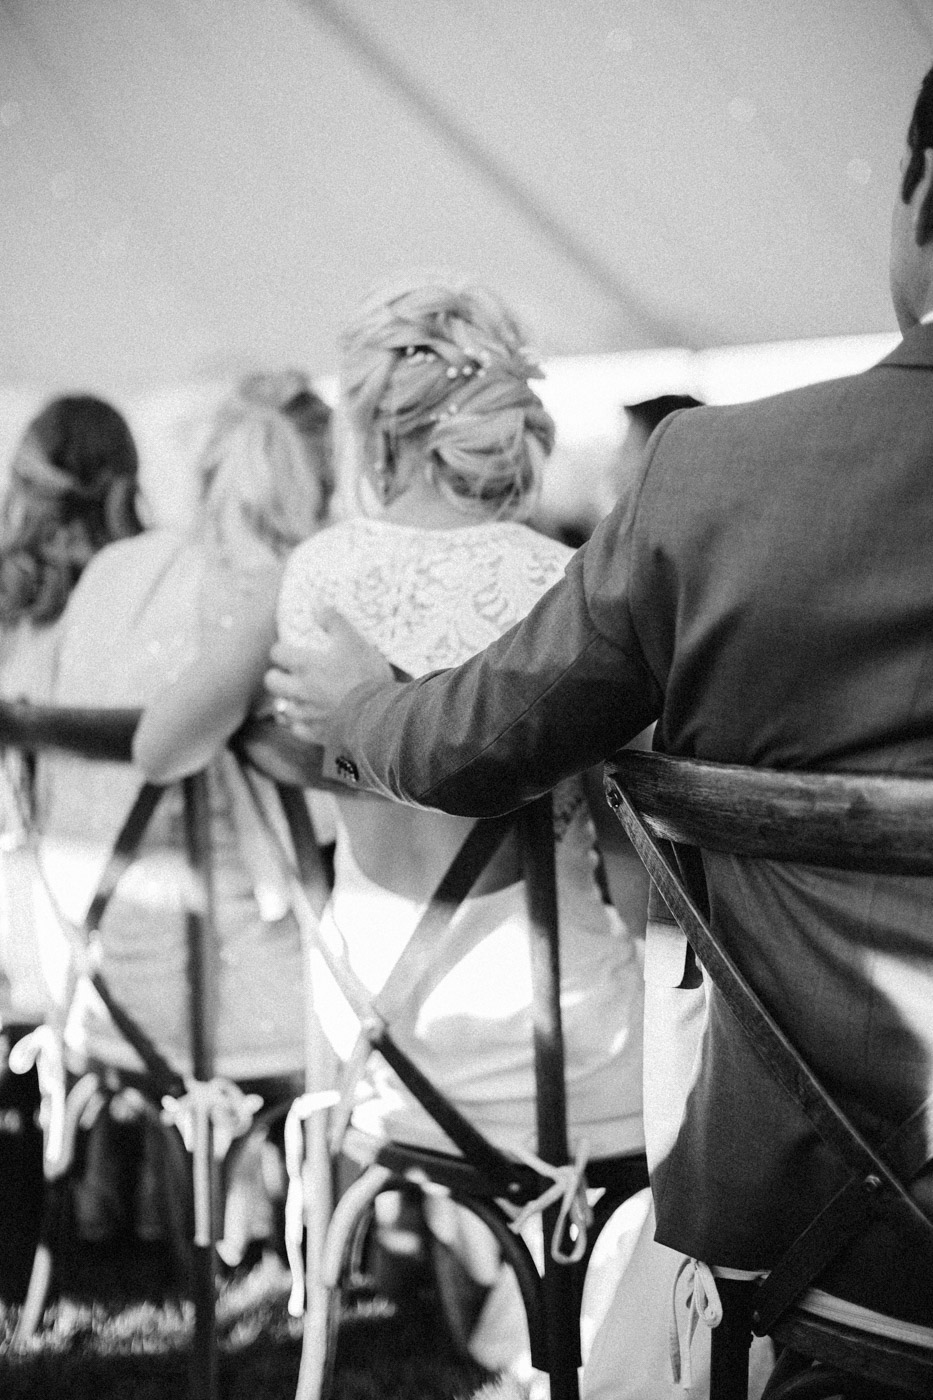 toronto_wedding_photographer_muskoka_outdoor_wedding-89.jpg